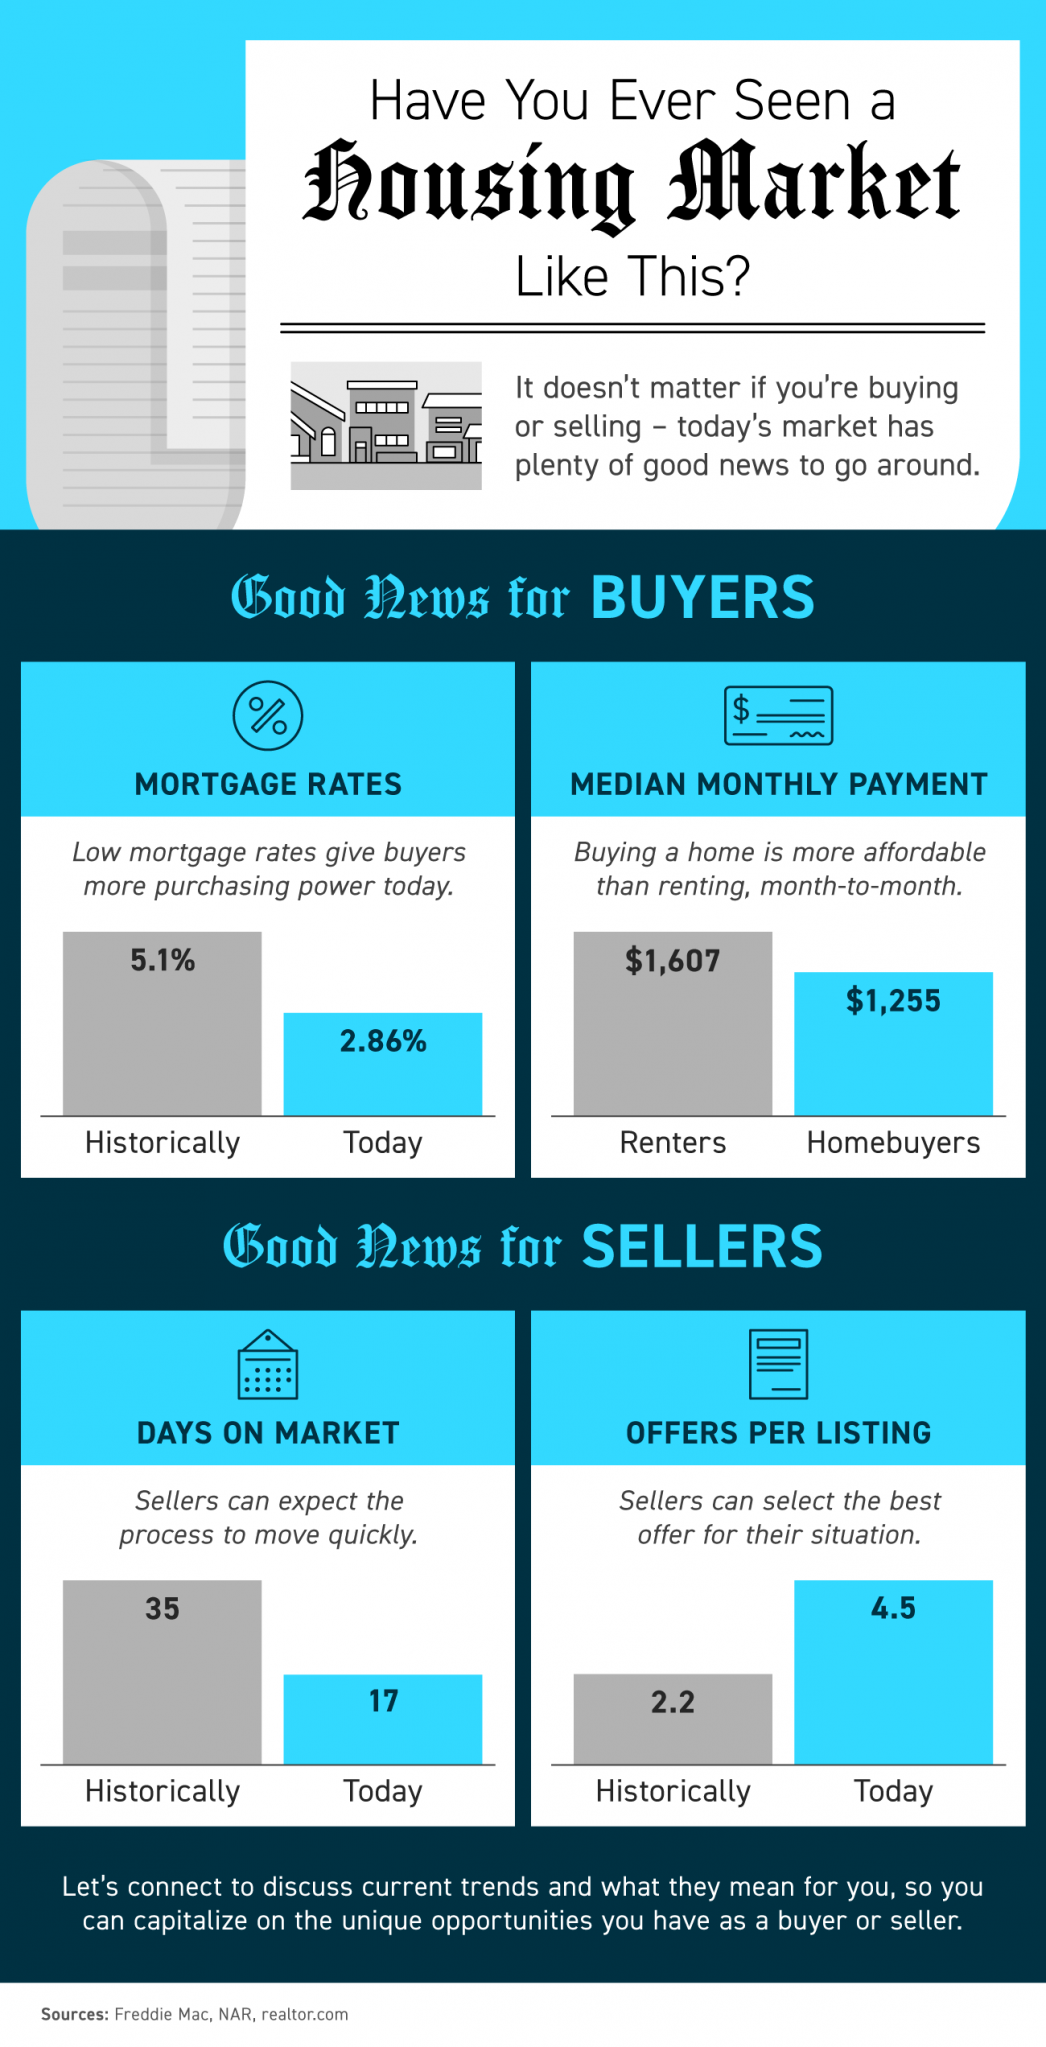 Have You Ever Seen a Housing Market Like This? [INFOGRAPHIC] | MyKCM